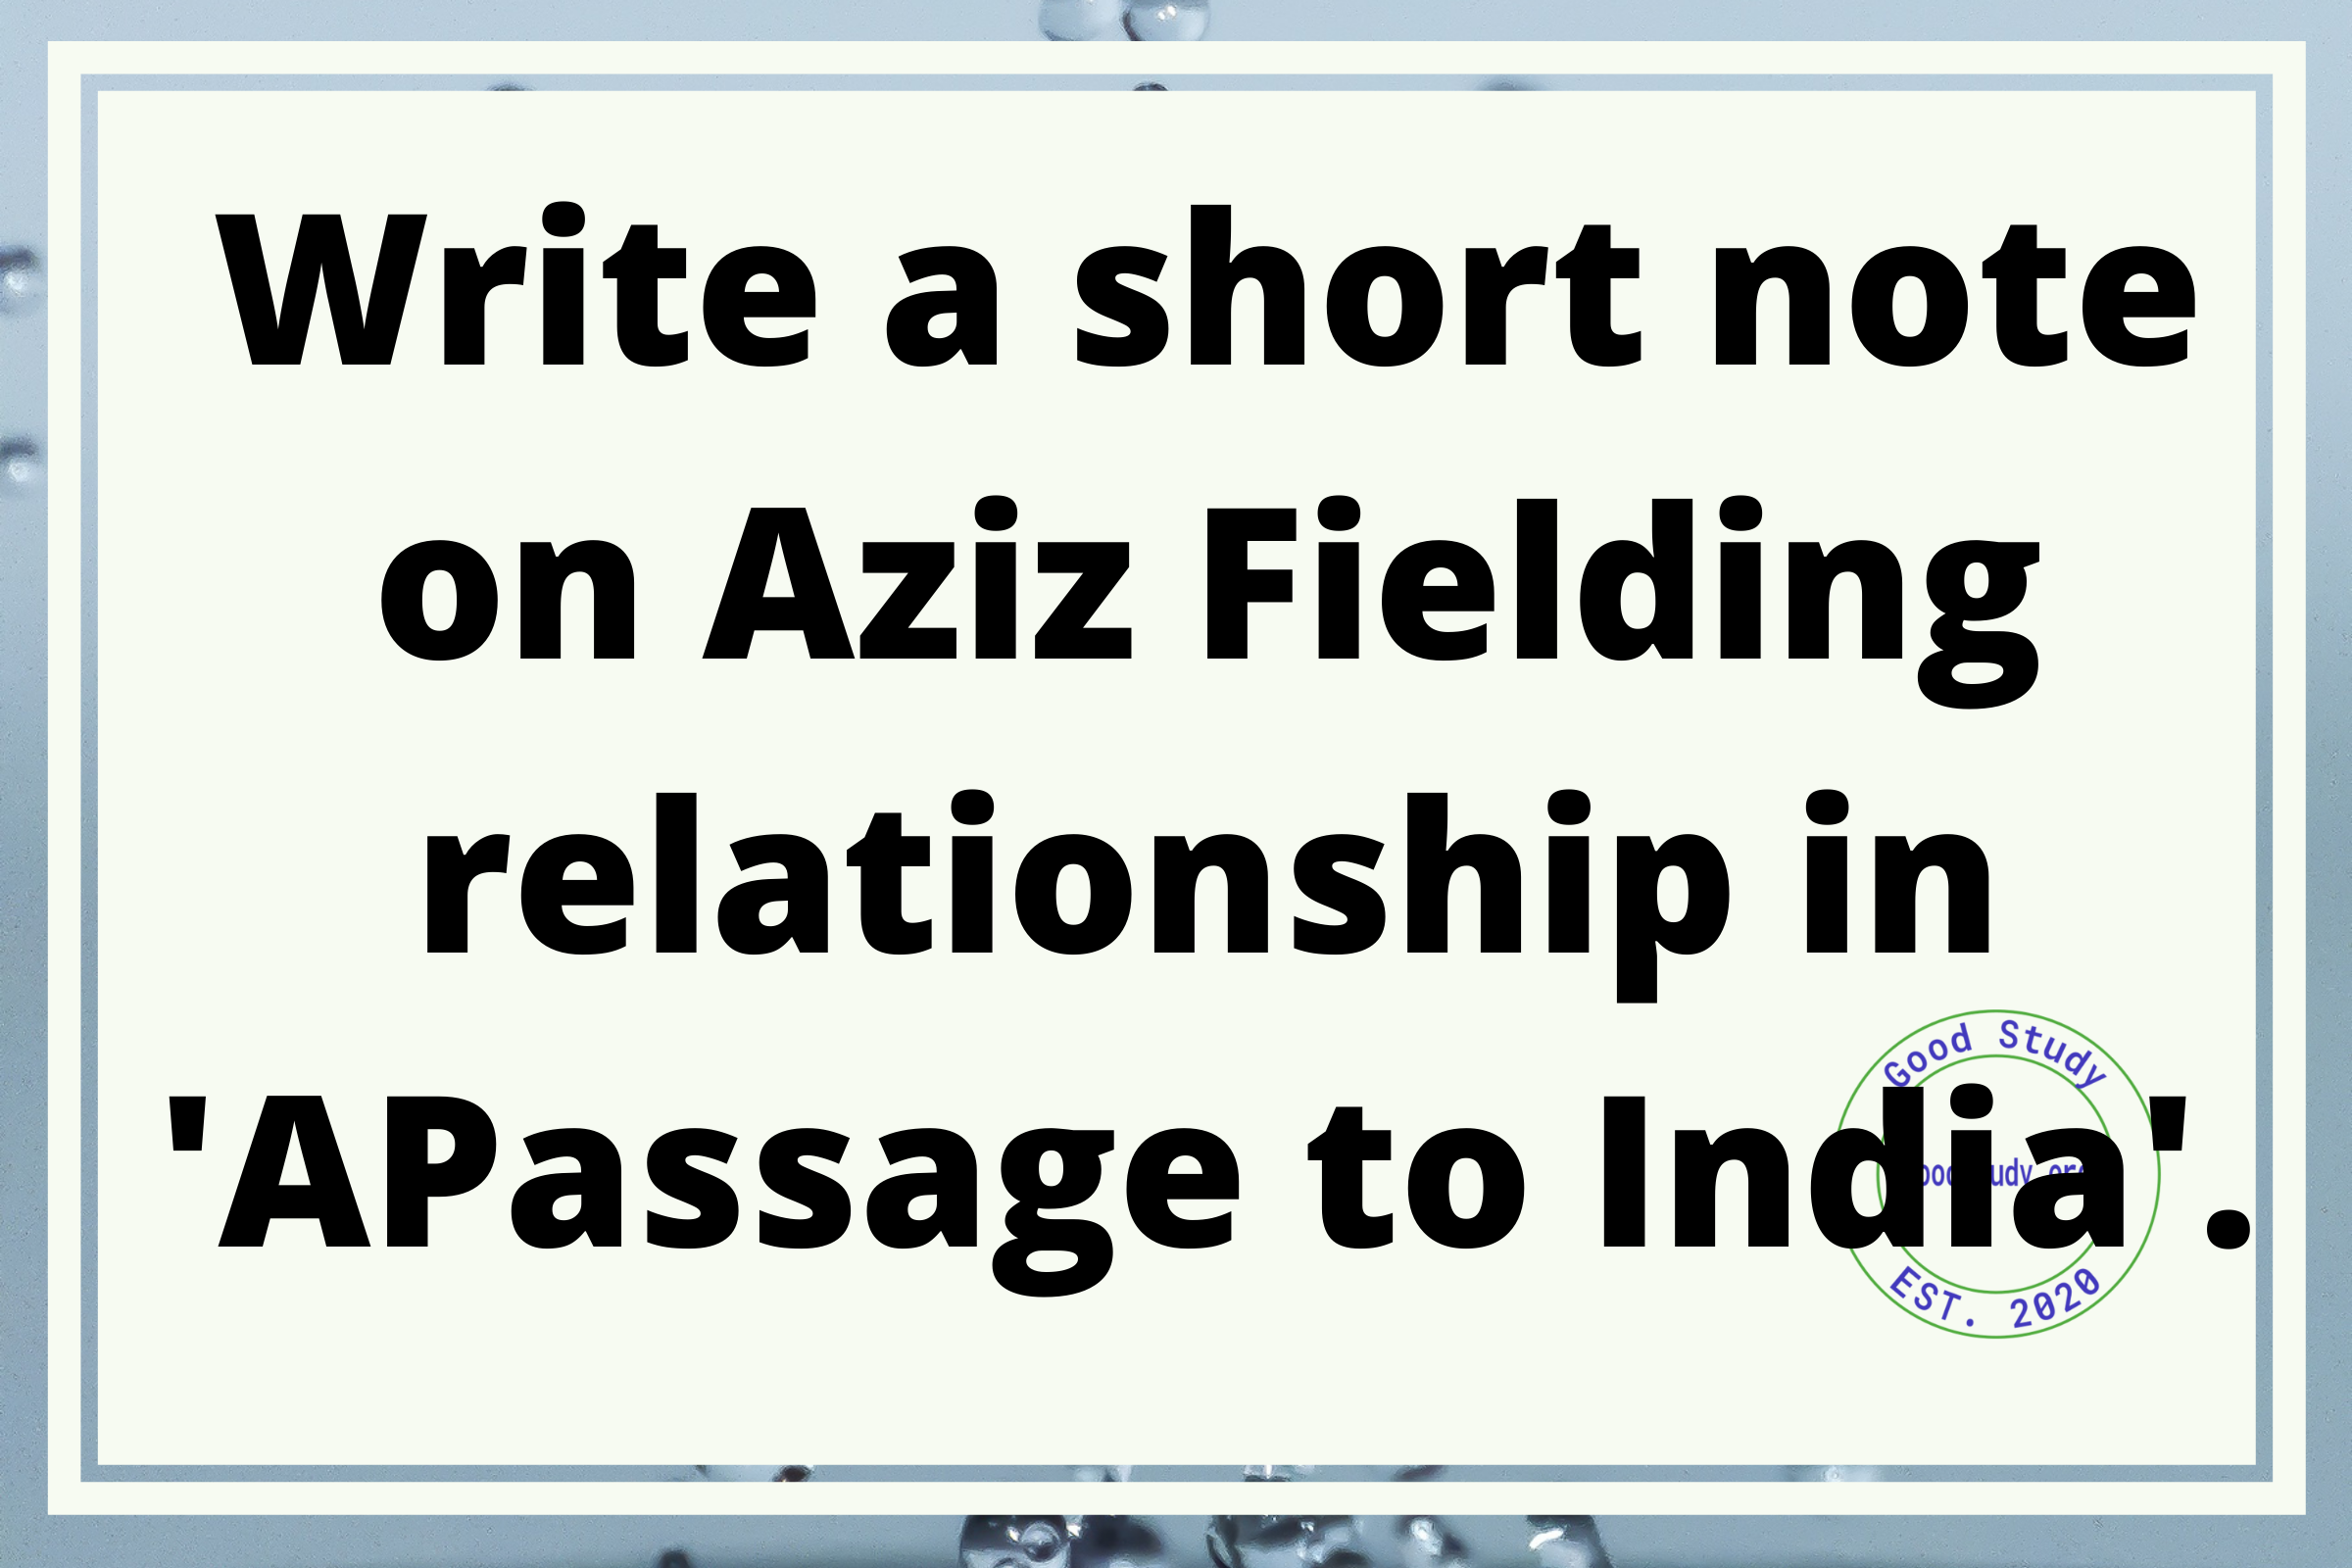 Write a short note on Aziz Fielding relationship in A Passage to India